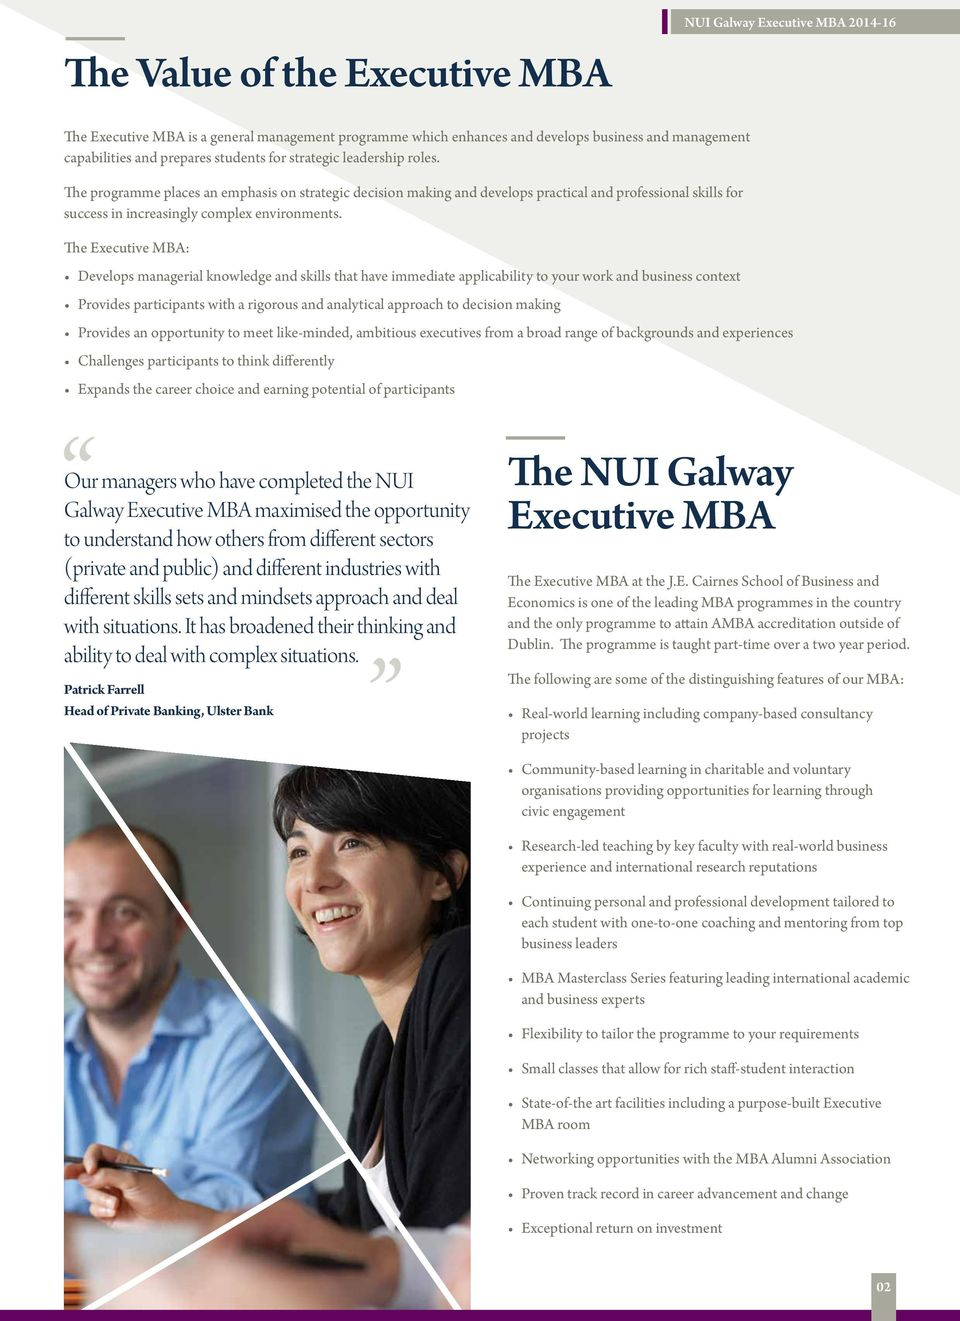 The Executive MBA: Develops managerial knowledge and skills that have immediate applicability to your work and business context Provides participants with a rigorous and analytical approach to